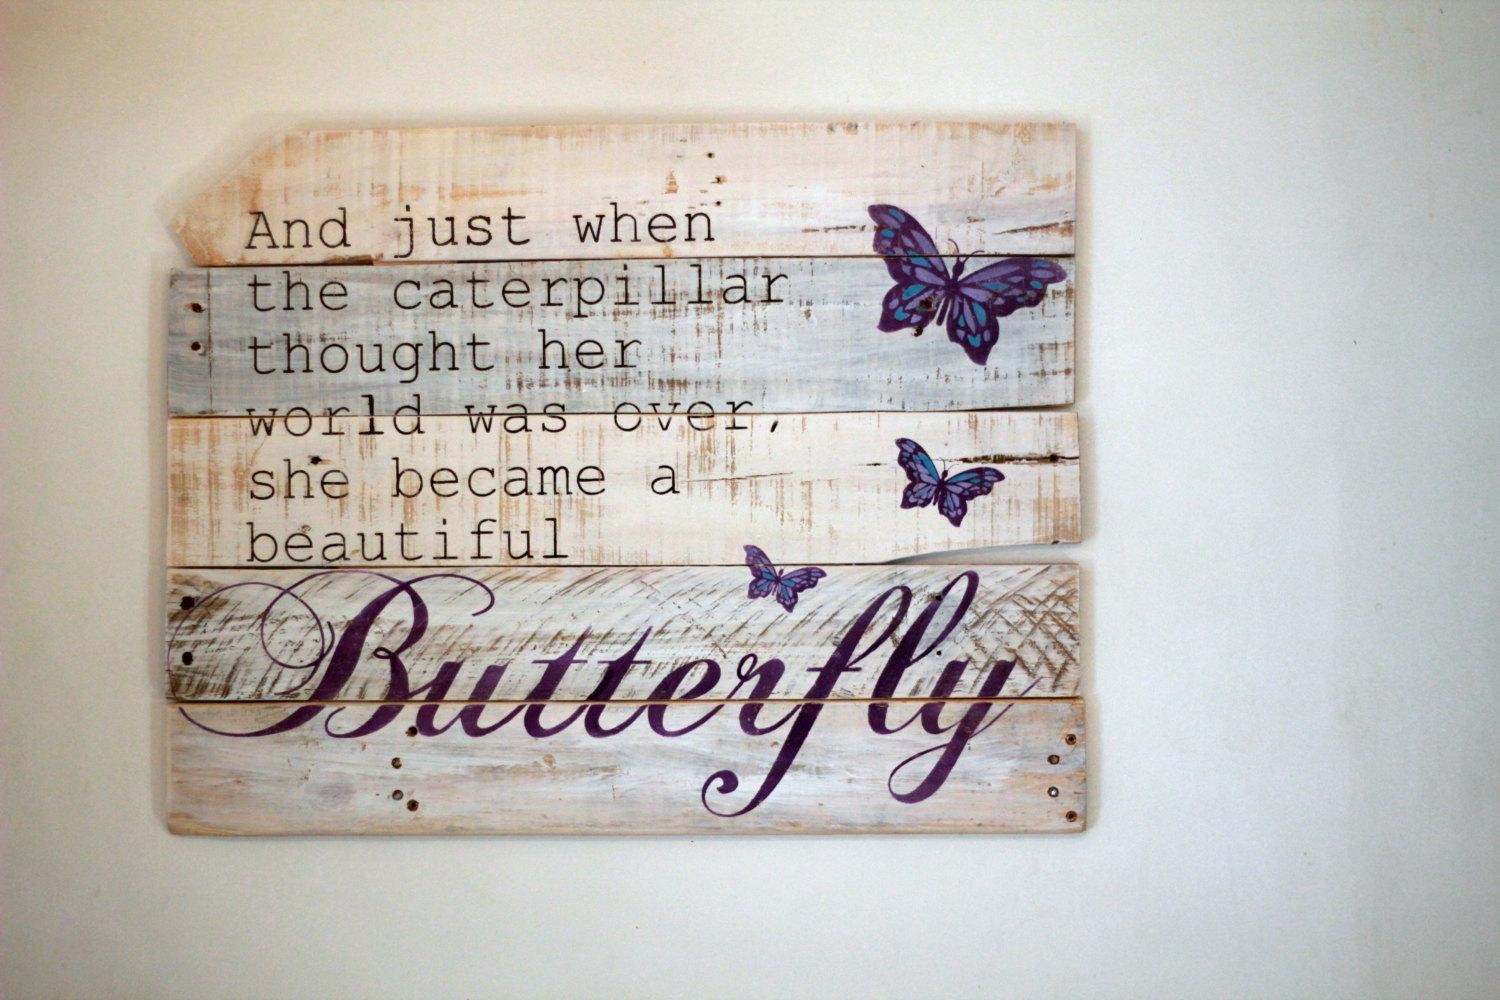 Reclaimed Wood Wall Art, Just When The Caterpillar Thought Within Wooden Wall Art Quotes (Image 8 of 20)